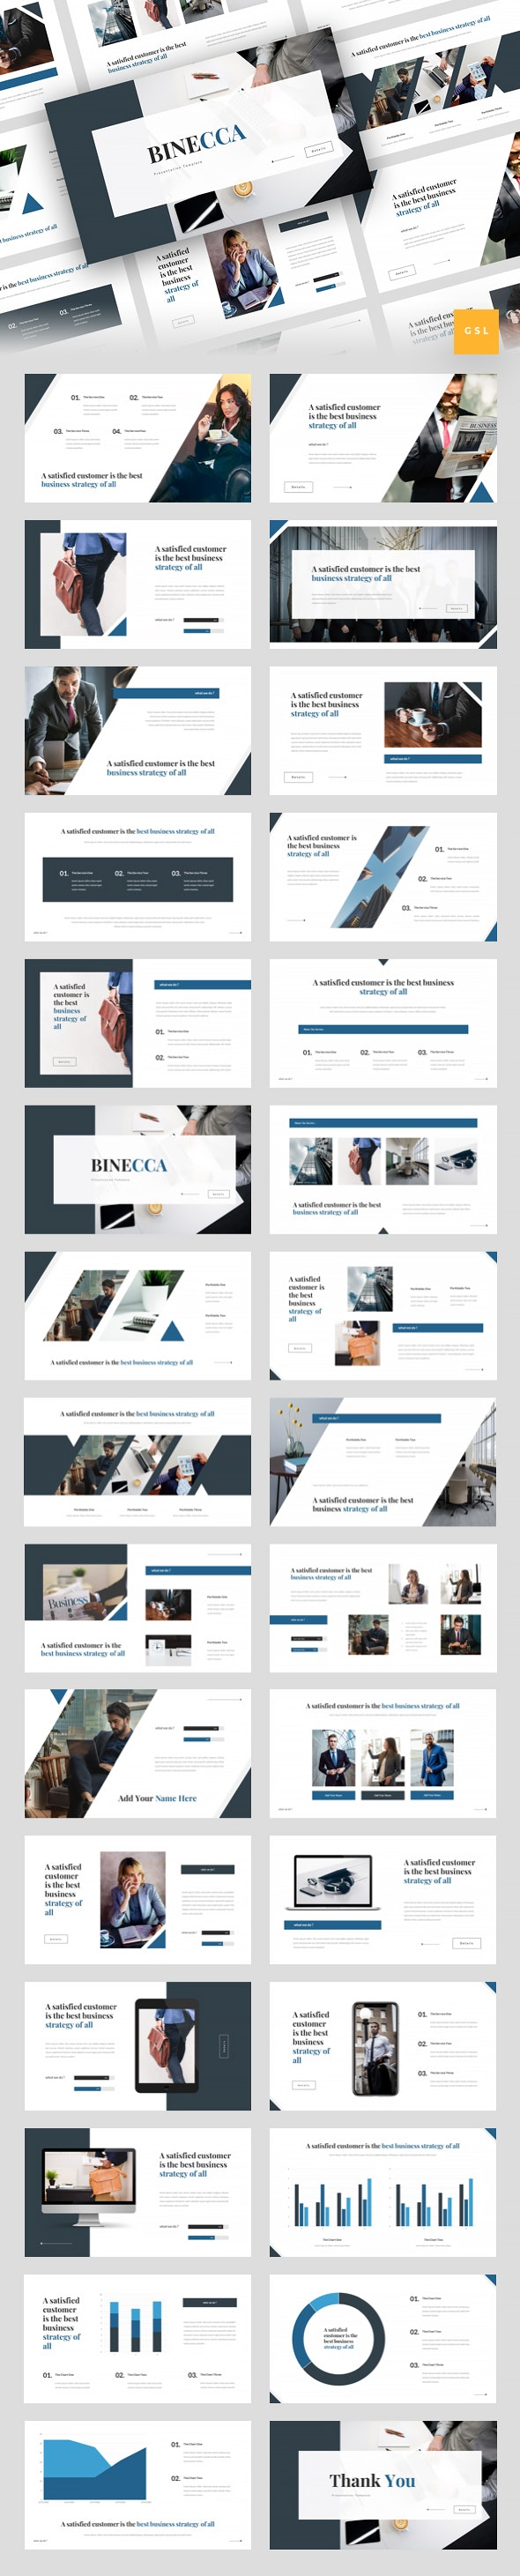 Binecca - Business Google Slides Template - Google Slides Presentation Templates